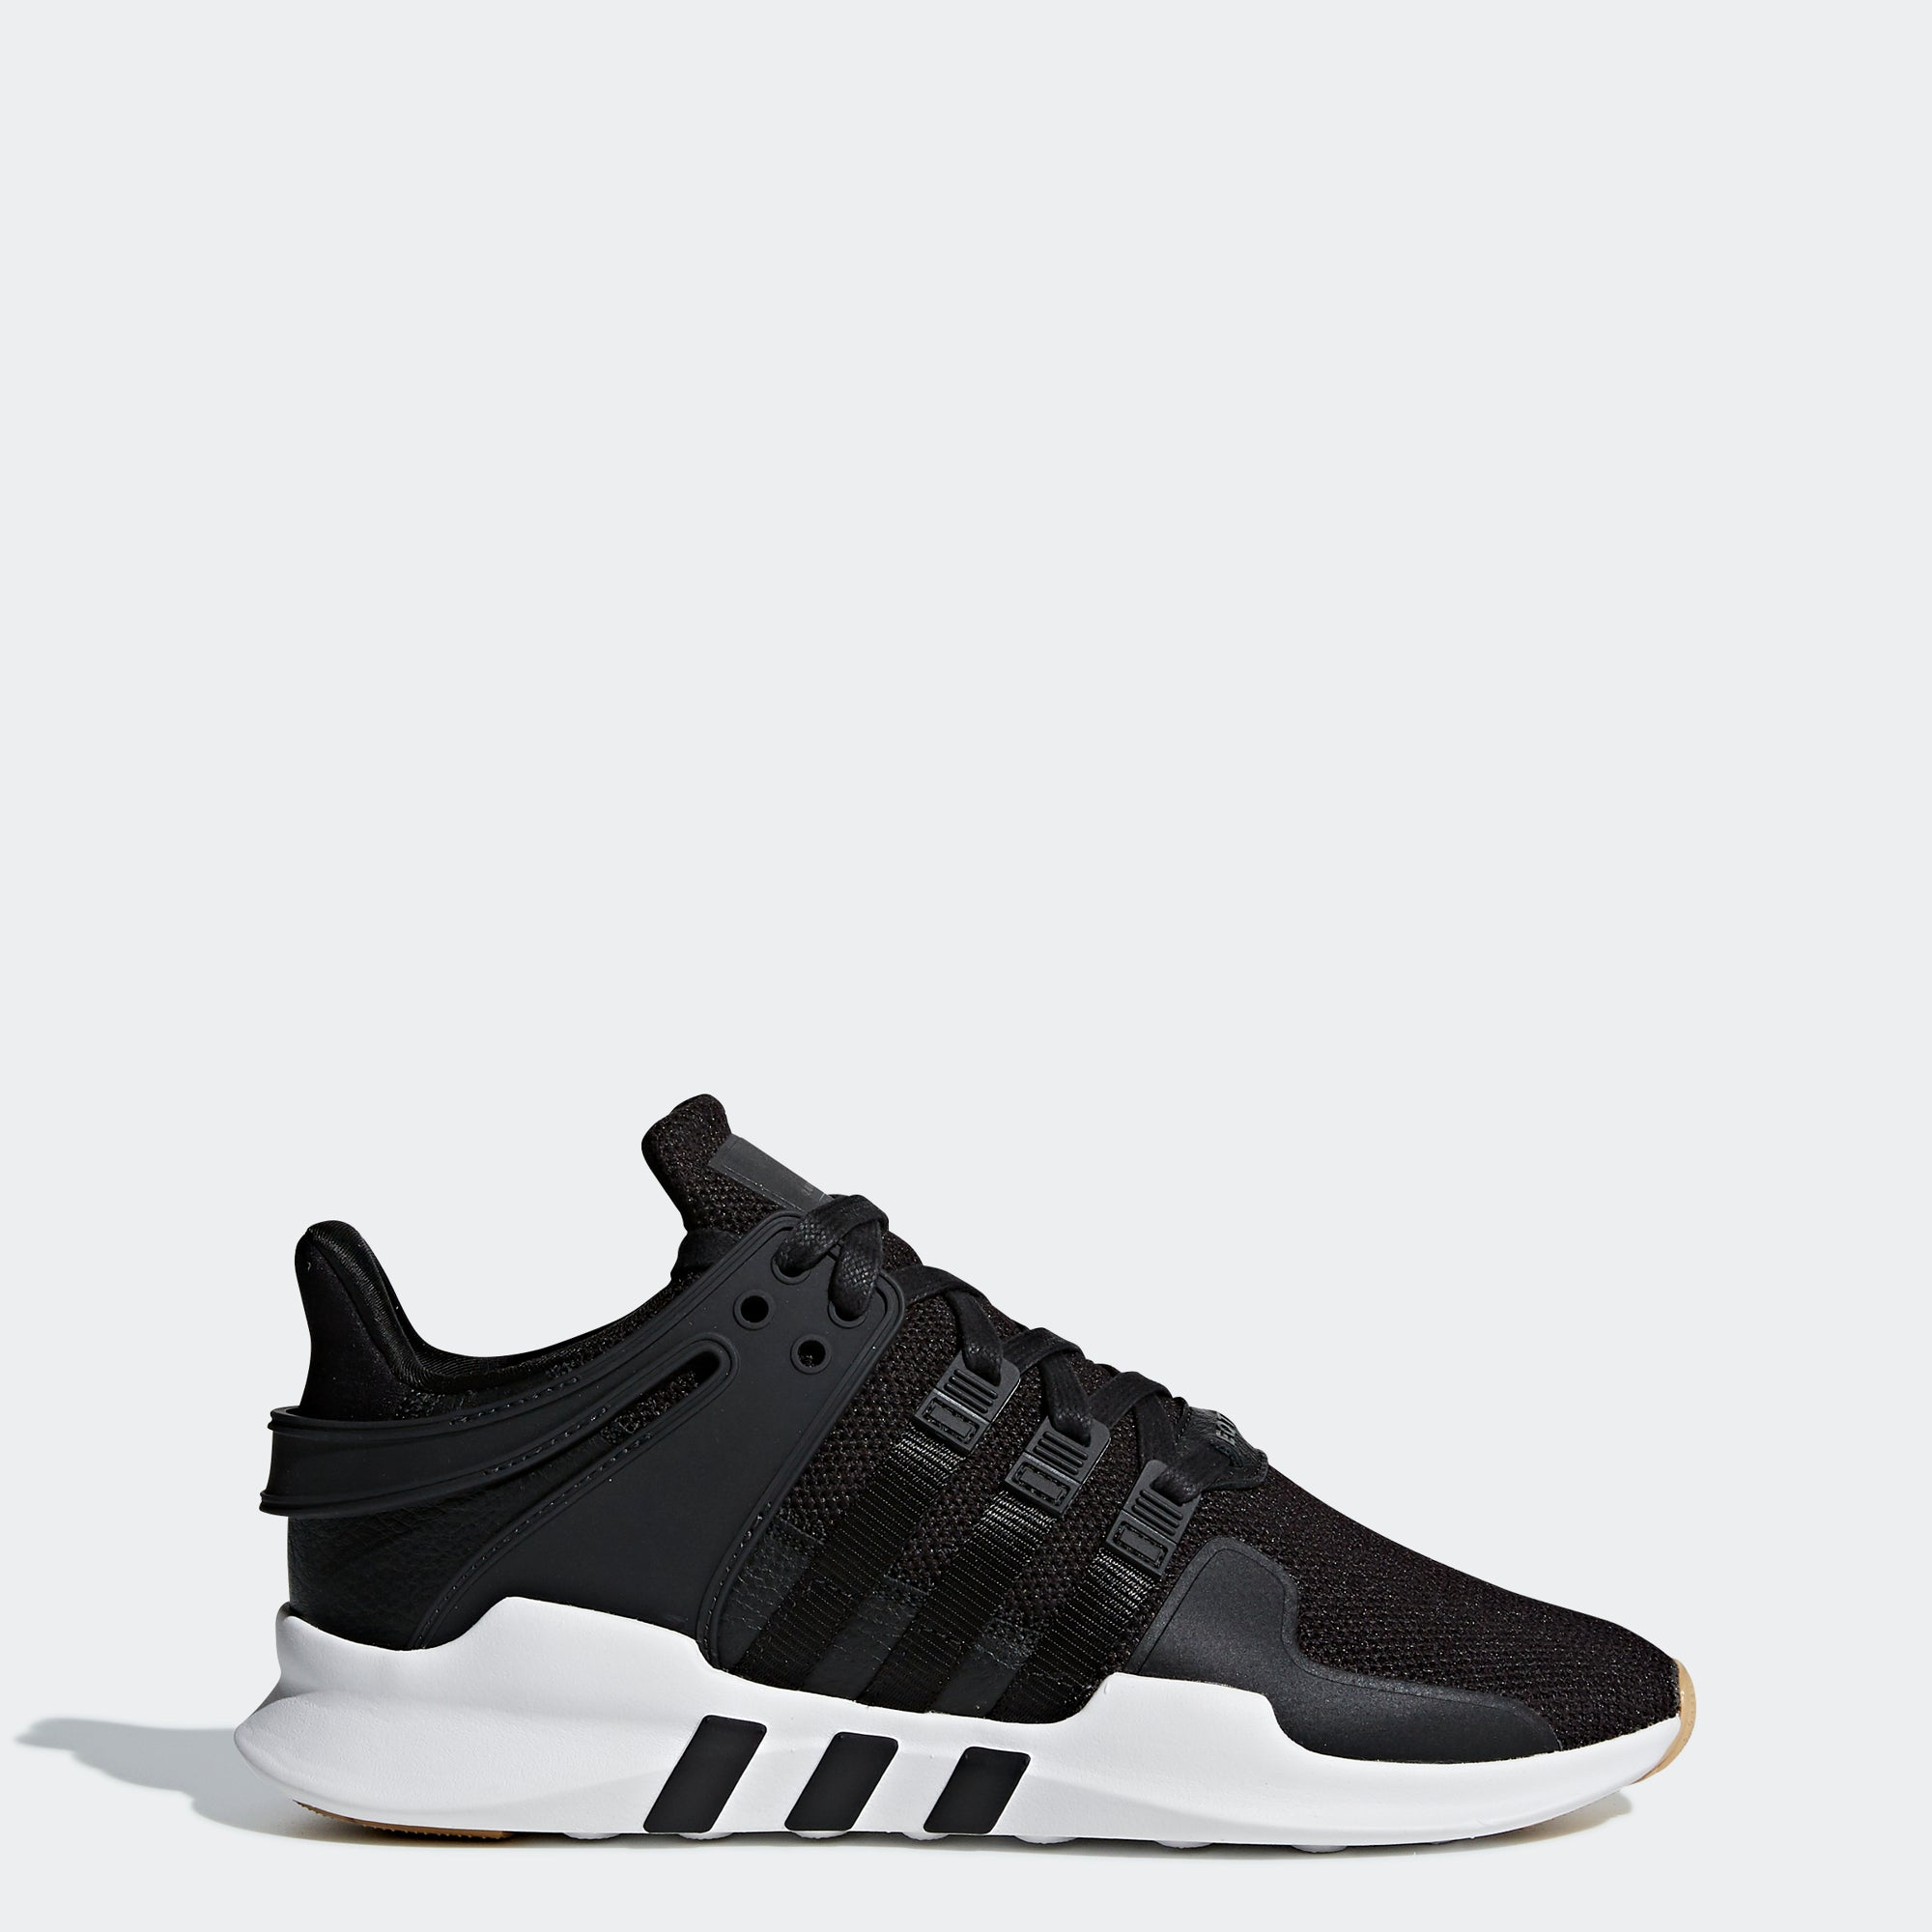 new arrival b4303 2ac9f Mens adidas Originals EQT Support ADV Shoes Core Black Gum